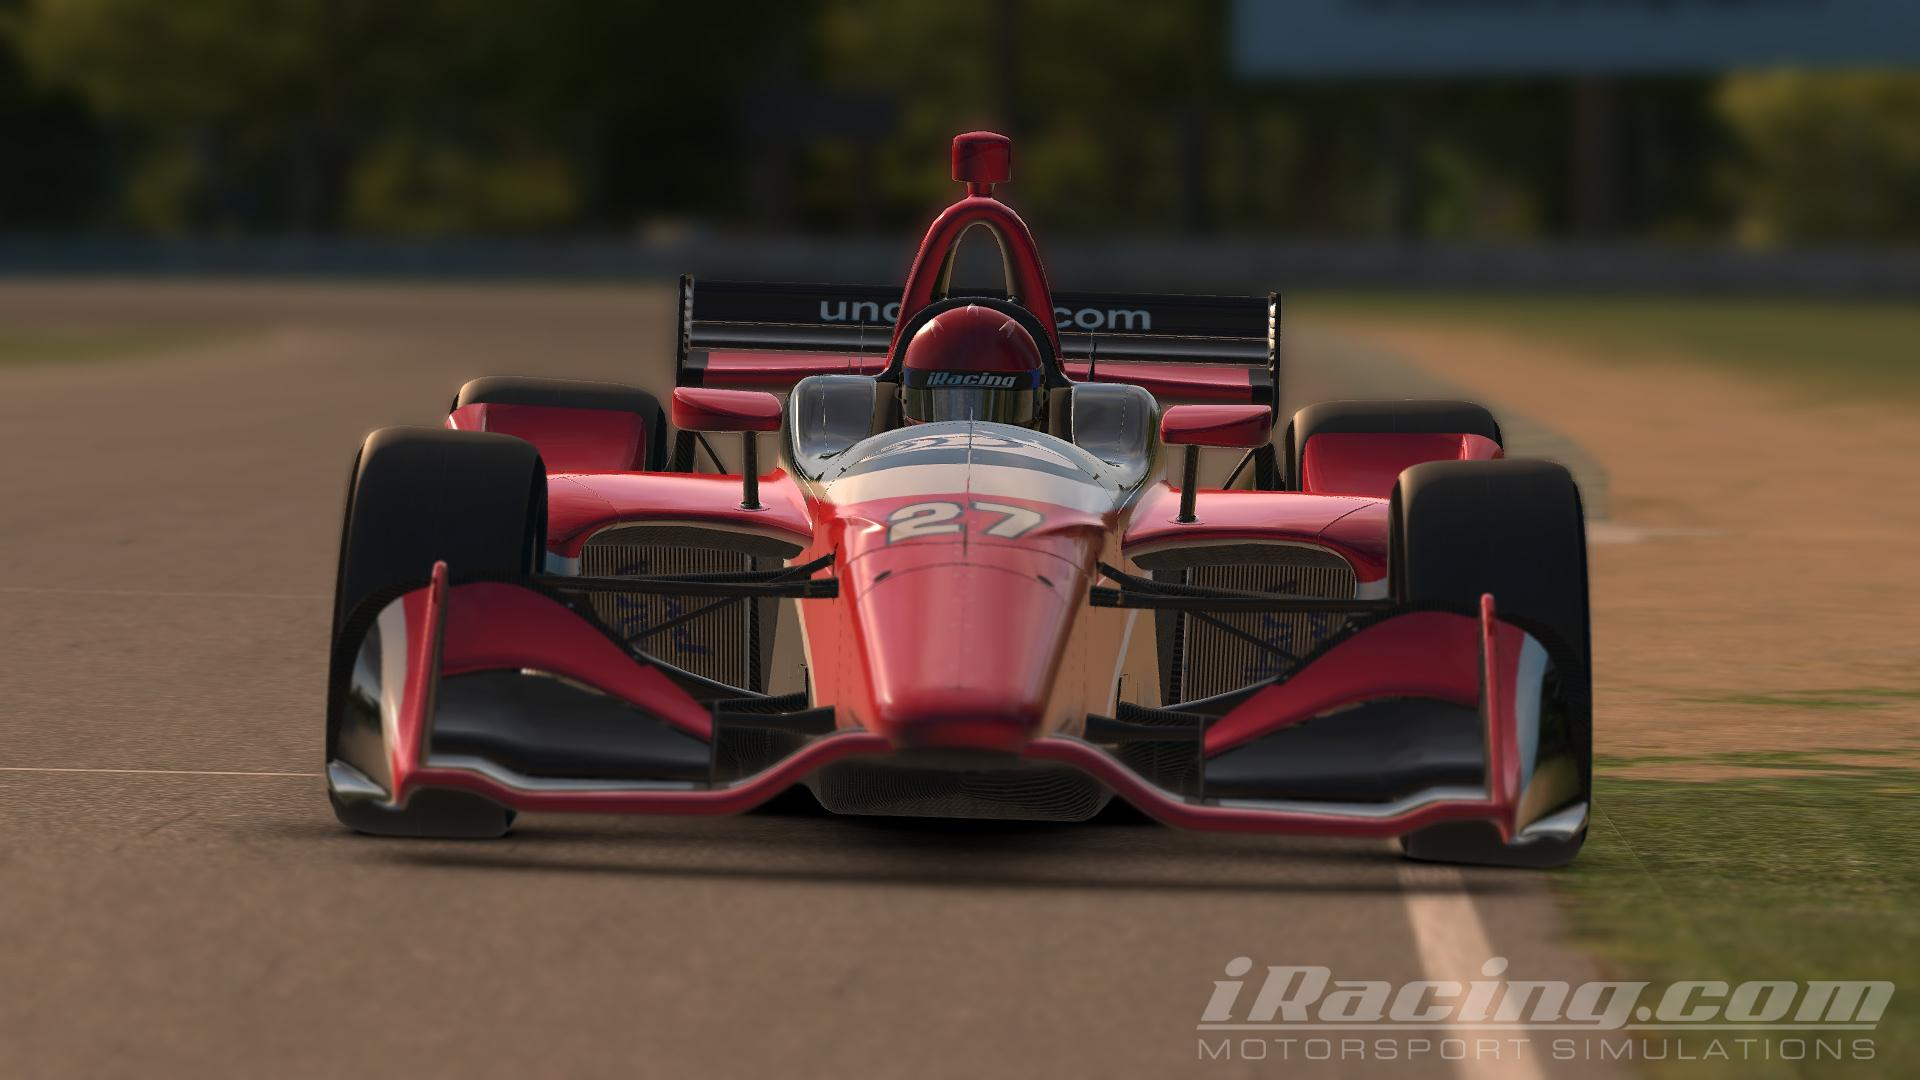 Preview of Undiecar by Ryan Hellyer